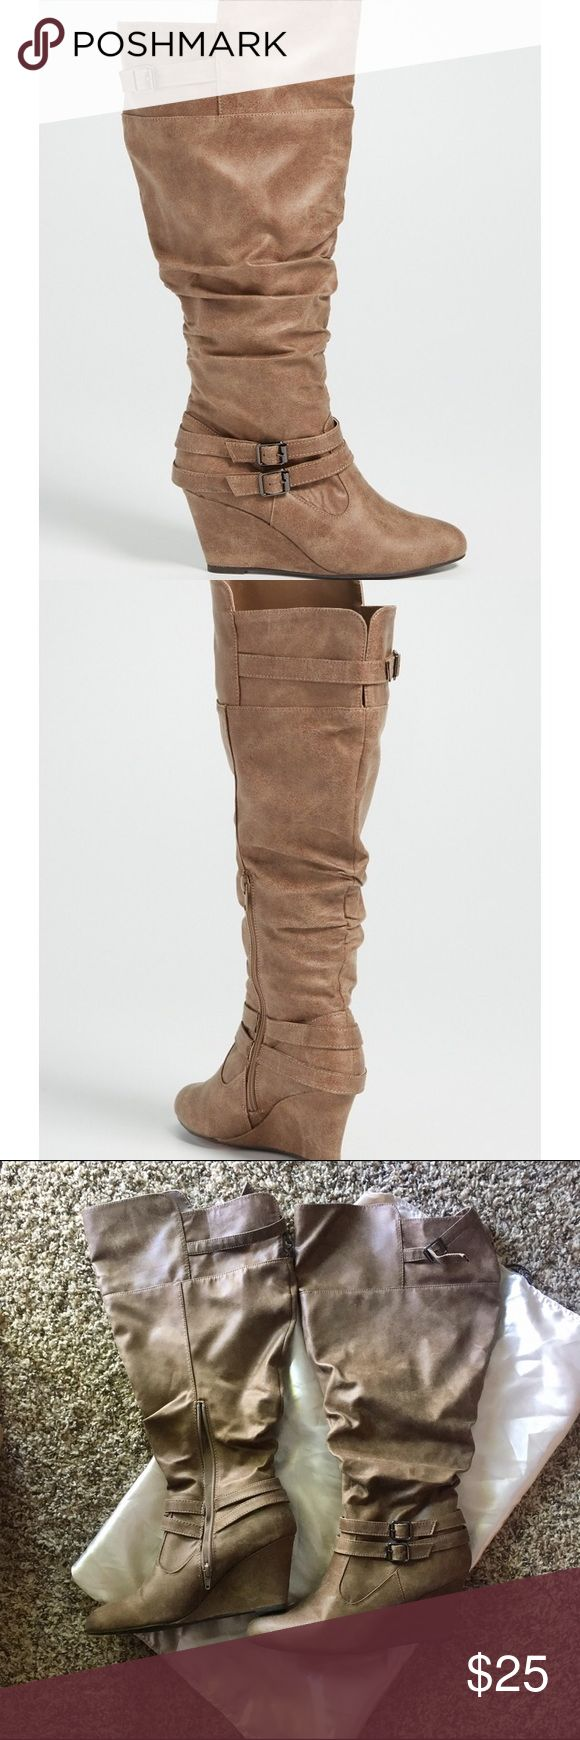 Maurices wide calf boots Size 9 wide wedge boot. Only worn once, smoke free home. First 2 pics depict true color, my photos pulled more gray than tan. Maurices Shoes Heeled Boots